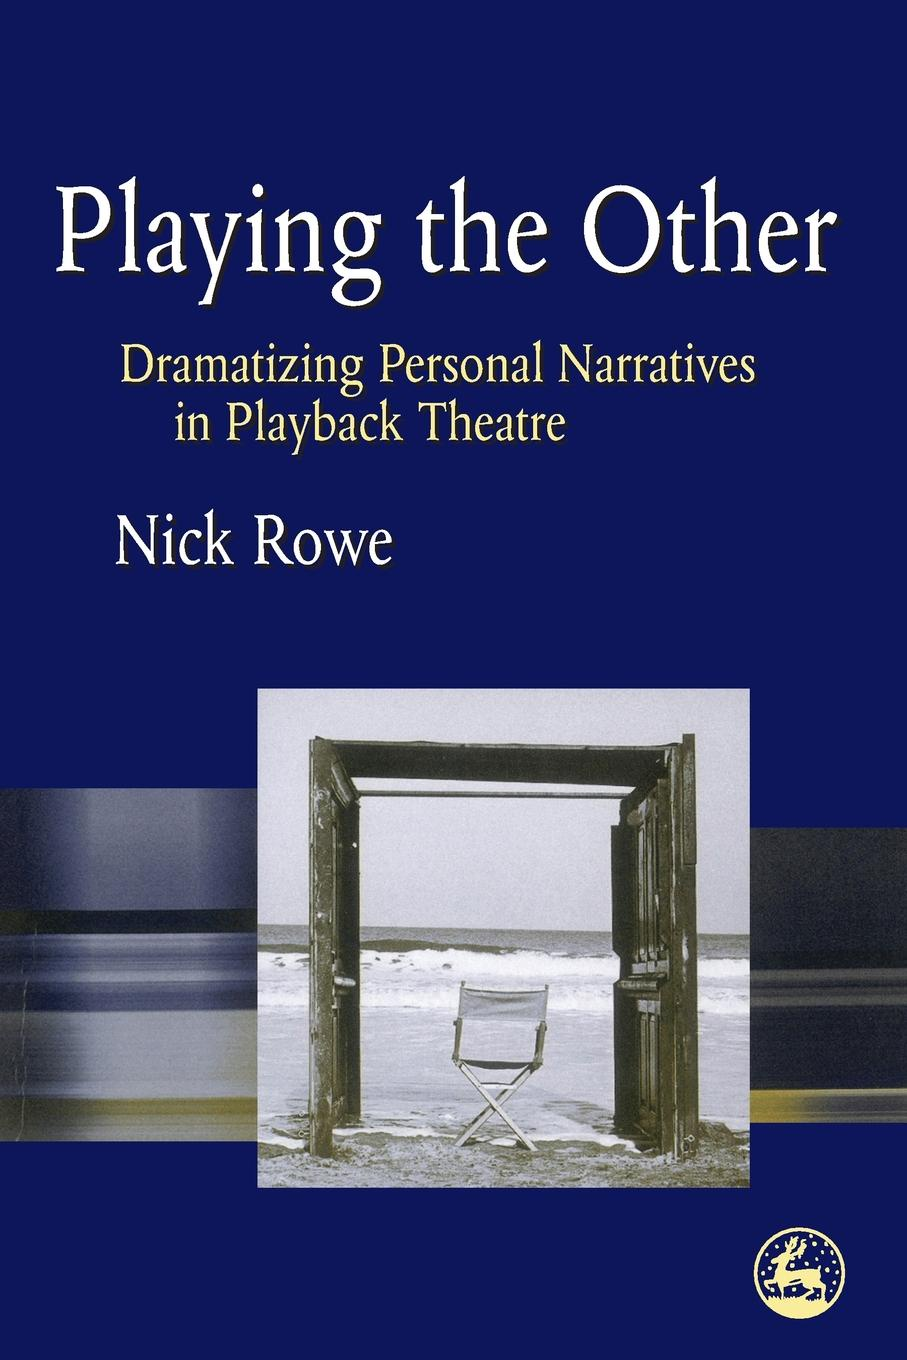 Playing the Other. Dramatizing Personal Narratives in Playback Theatre